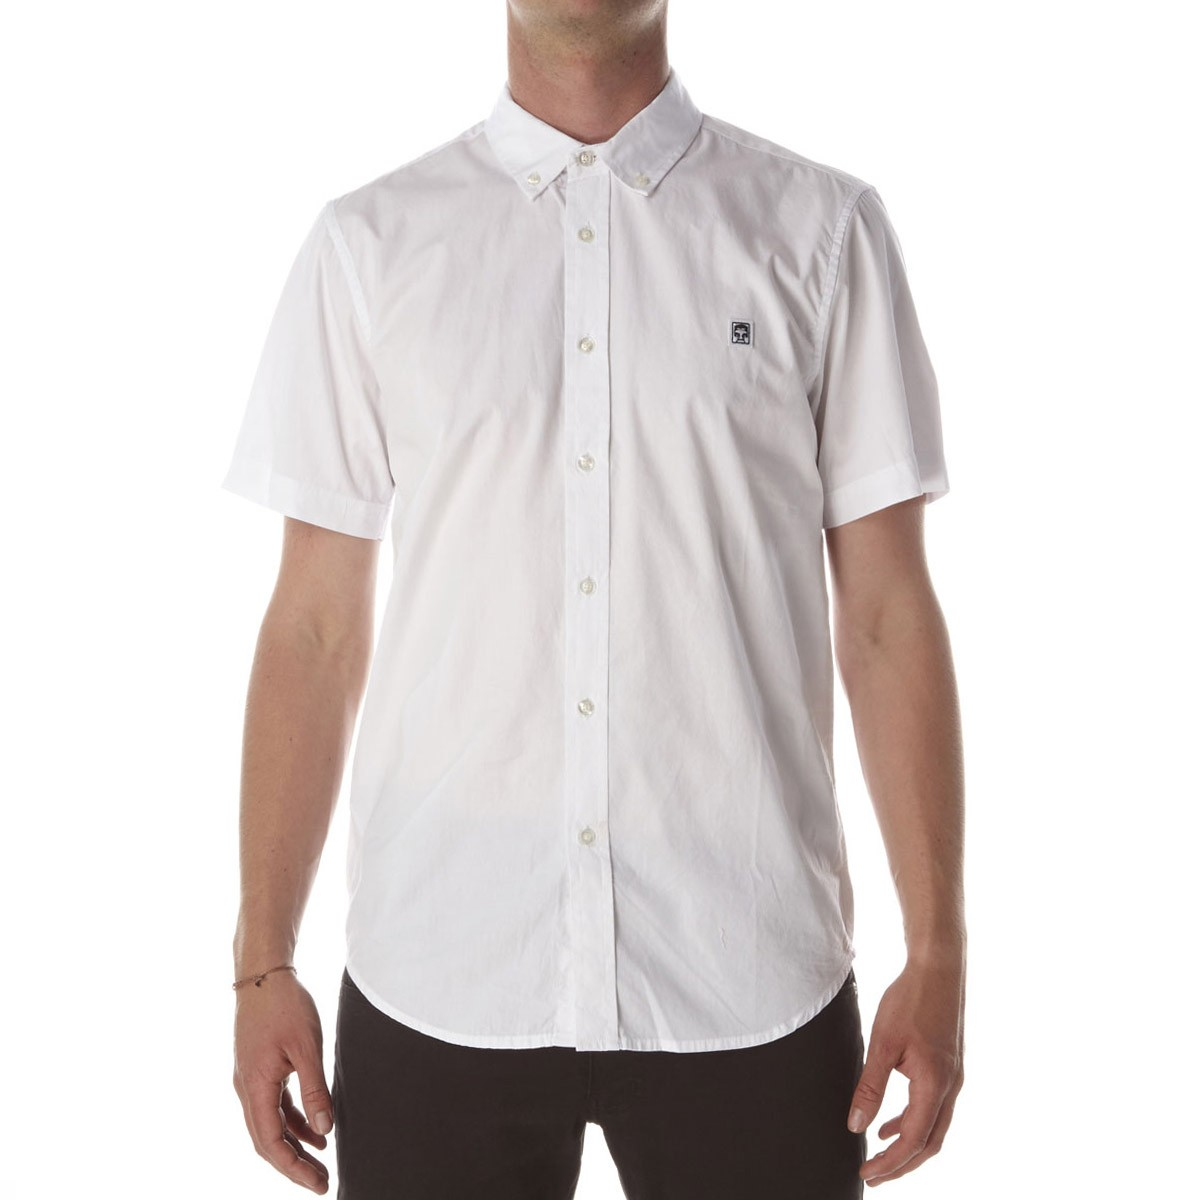 Men's Motion Regular Fit Check Cotton Twill Shirt (3 colors) $ Men's Regular Fit Linen Shirt (7 colors) $ New Men Shirts Collection. Discover the new Fall/Winter Shirts Collection for Men. Discover Men's Slim Fit Stretch Cotton Poplin Shirt .